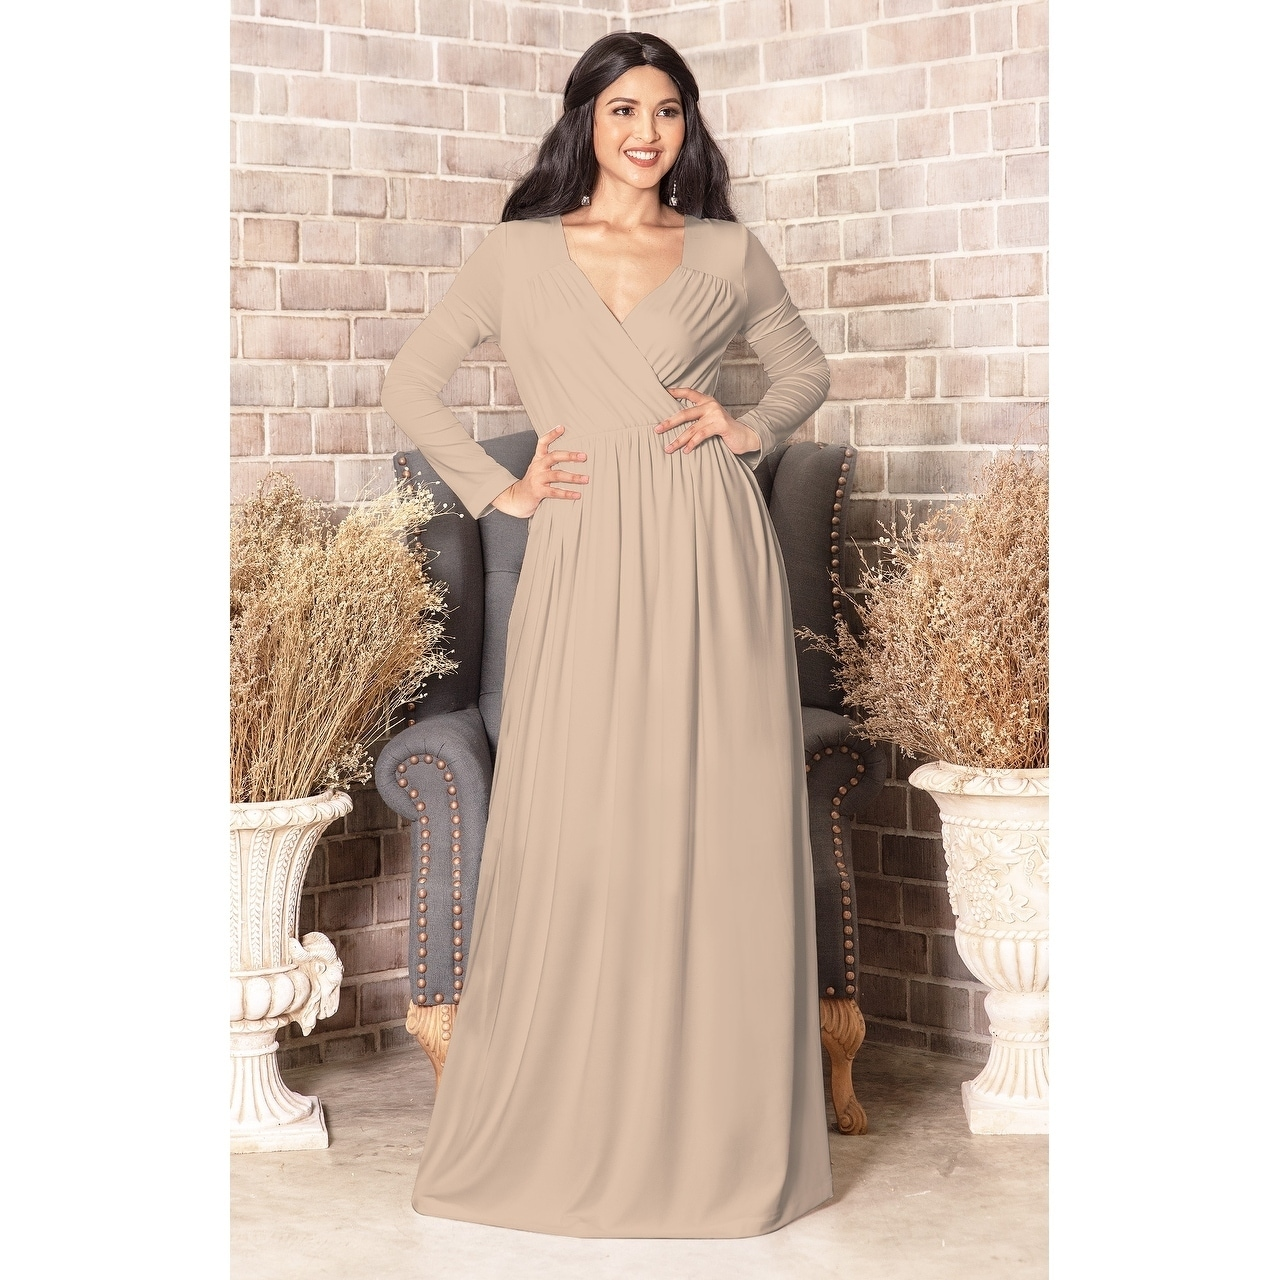 d8e6013cde9 Shop KOH KOH Long Sleeve Flowy Slit Sexy Wrap Empire Waist Maxi Dress Gown  - Free Shipping Today - Overstock - 10835726